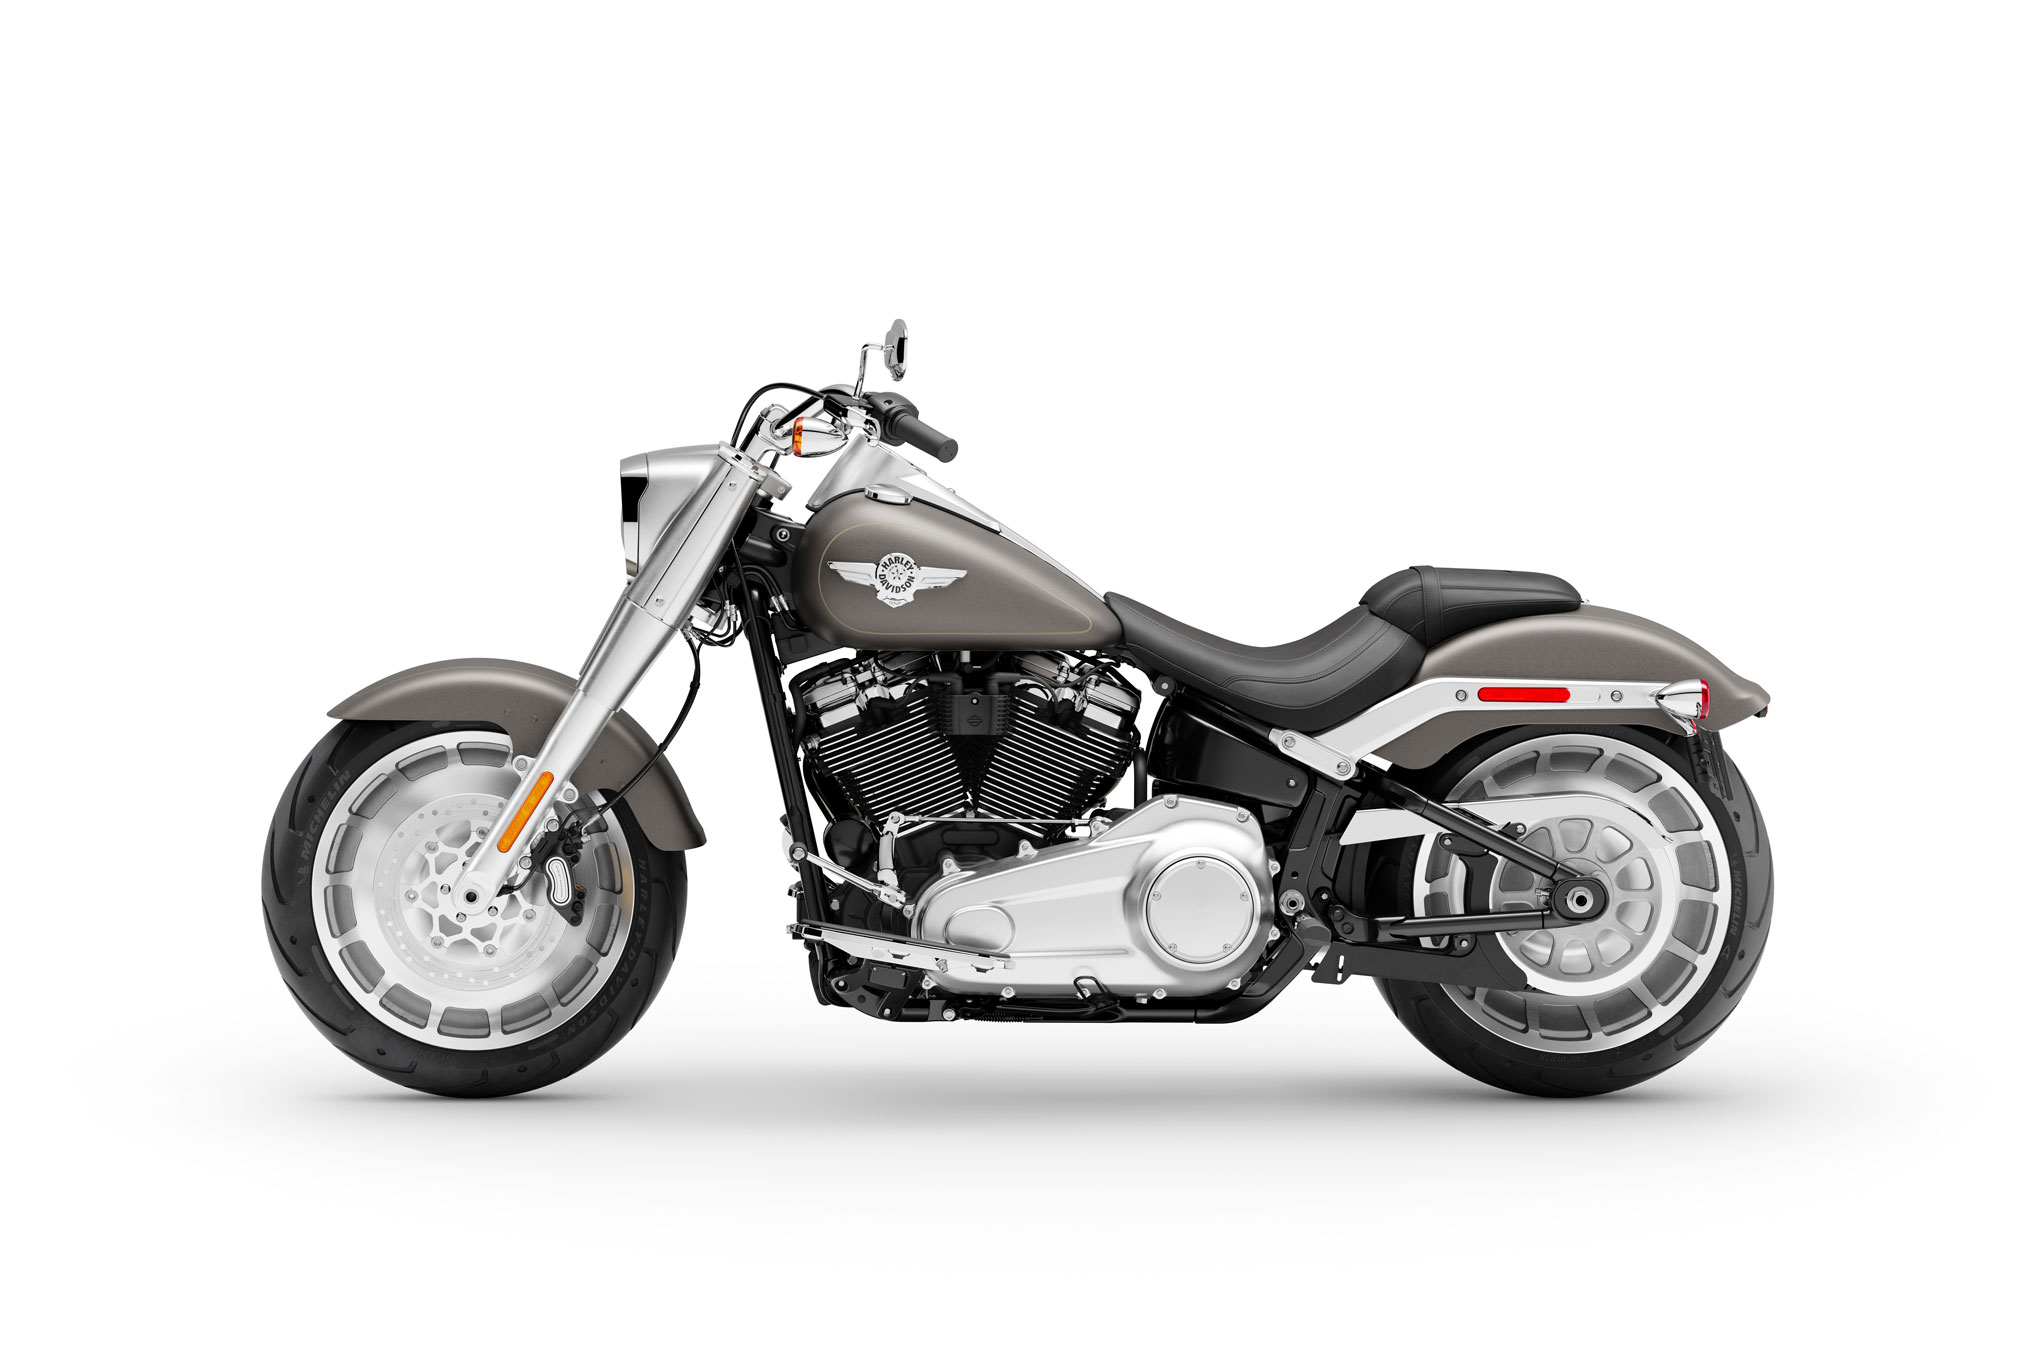 2019 Harley-Davidson Fat Boy Guide • Total Motorcycle